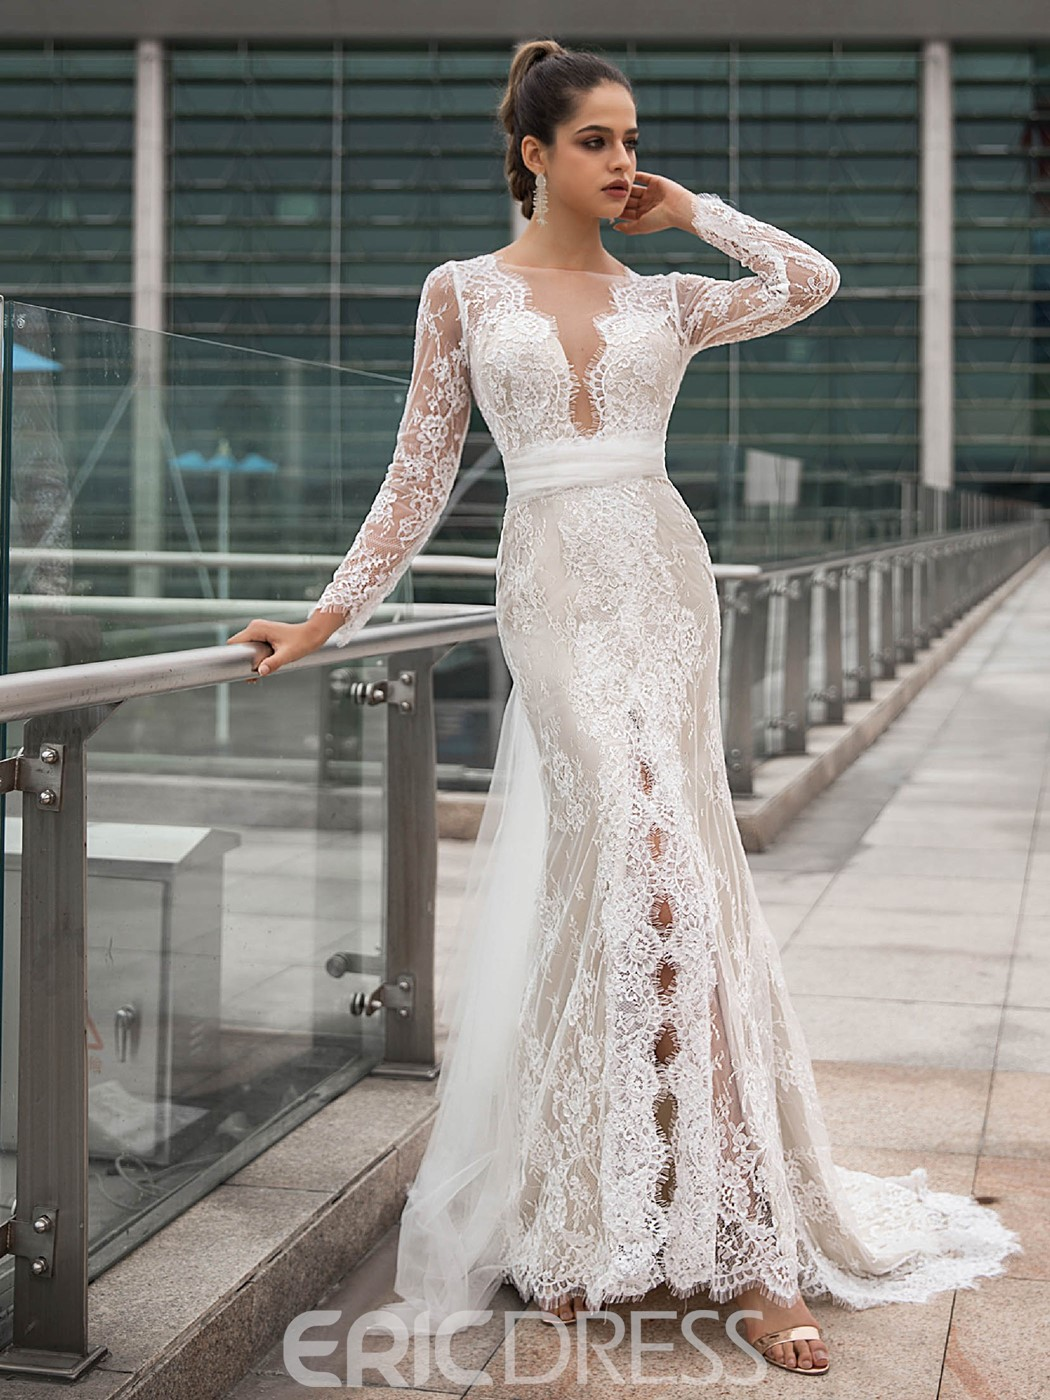 Ericdress Ribbons Long Sleeves Mermaid Lace Wedding Dress 2020